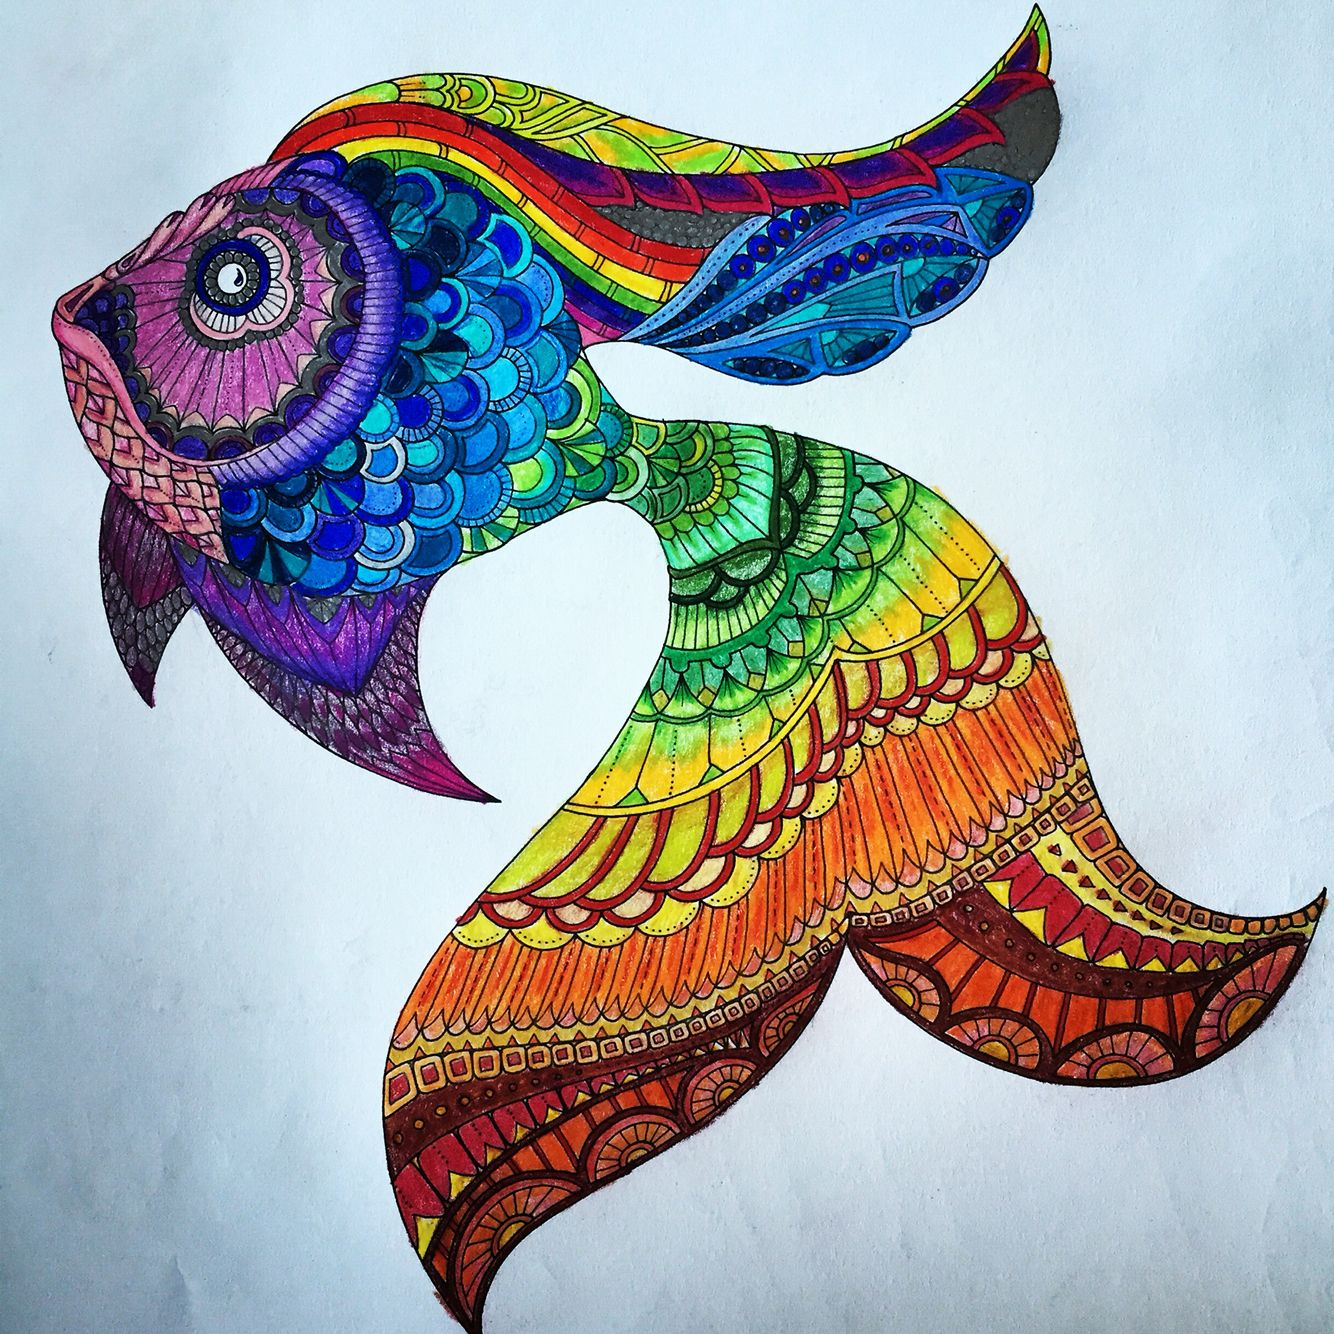 Felix murillo lleno de colores painting acrylic artwork fish art - More Adult Coloring Lost Ocean By Johanna Basford Rainbow Fish Made With Prismacolor